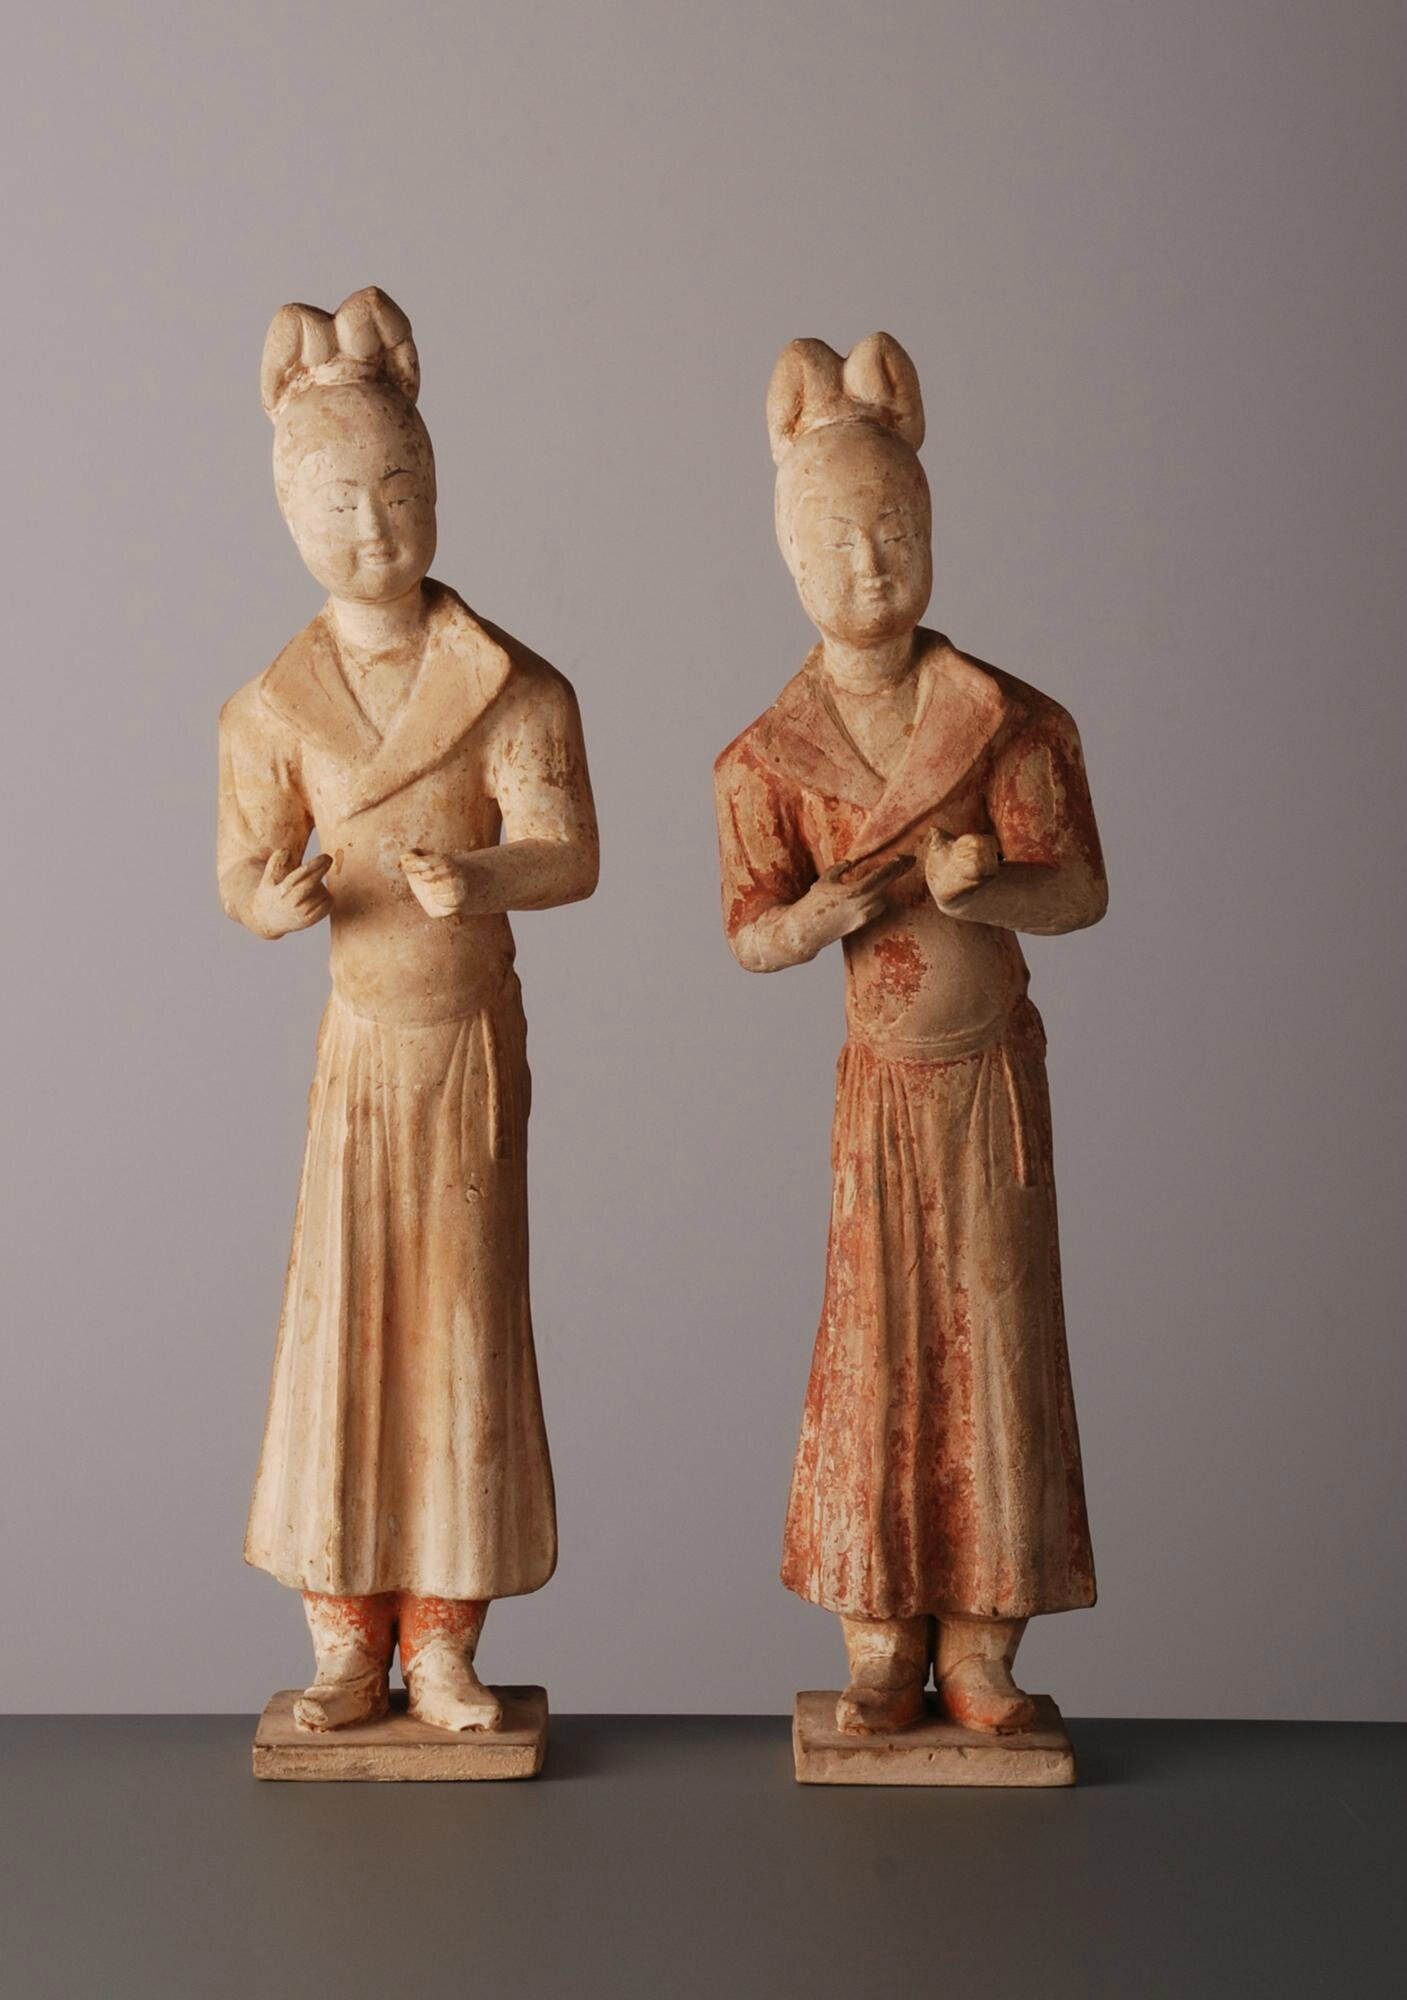 Pair of Pottery Figures, China, Tang Dynasty (618-907)